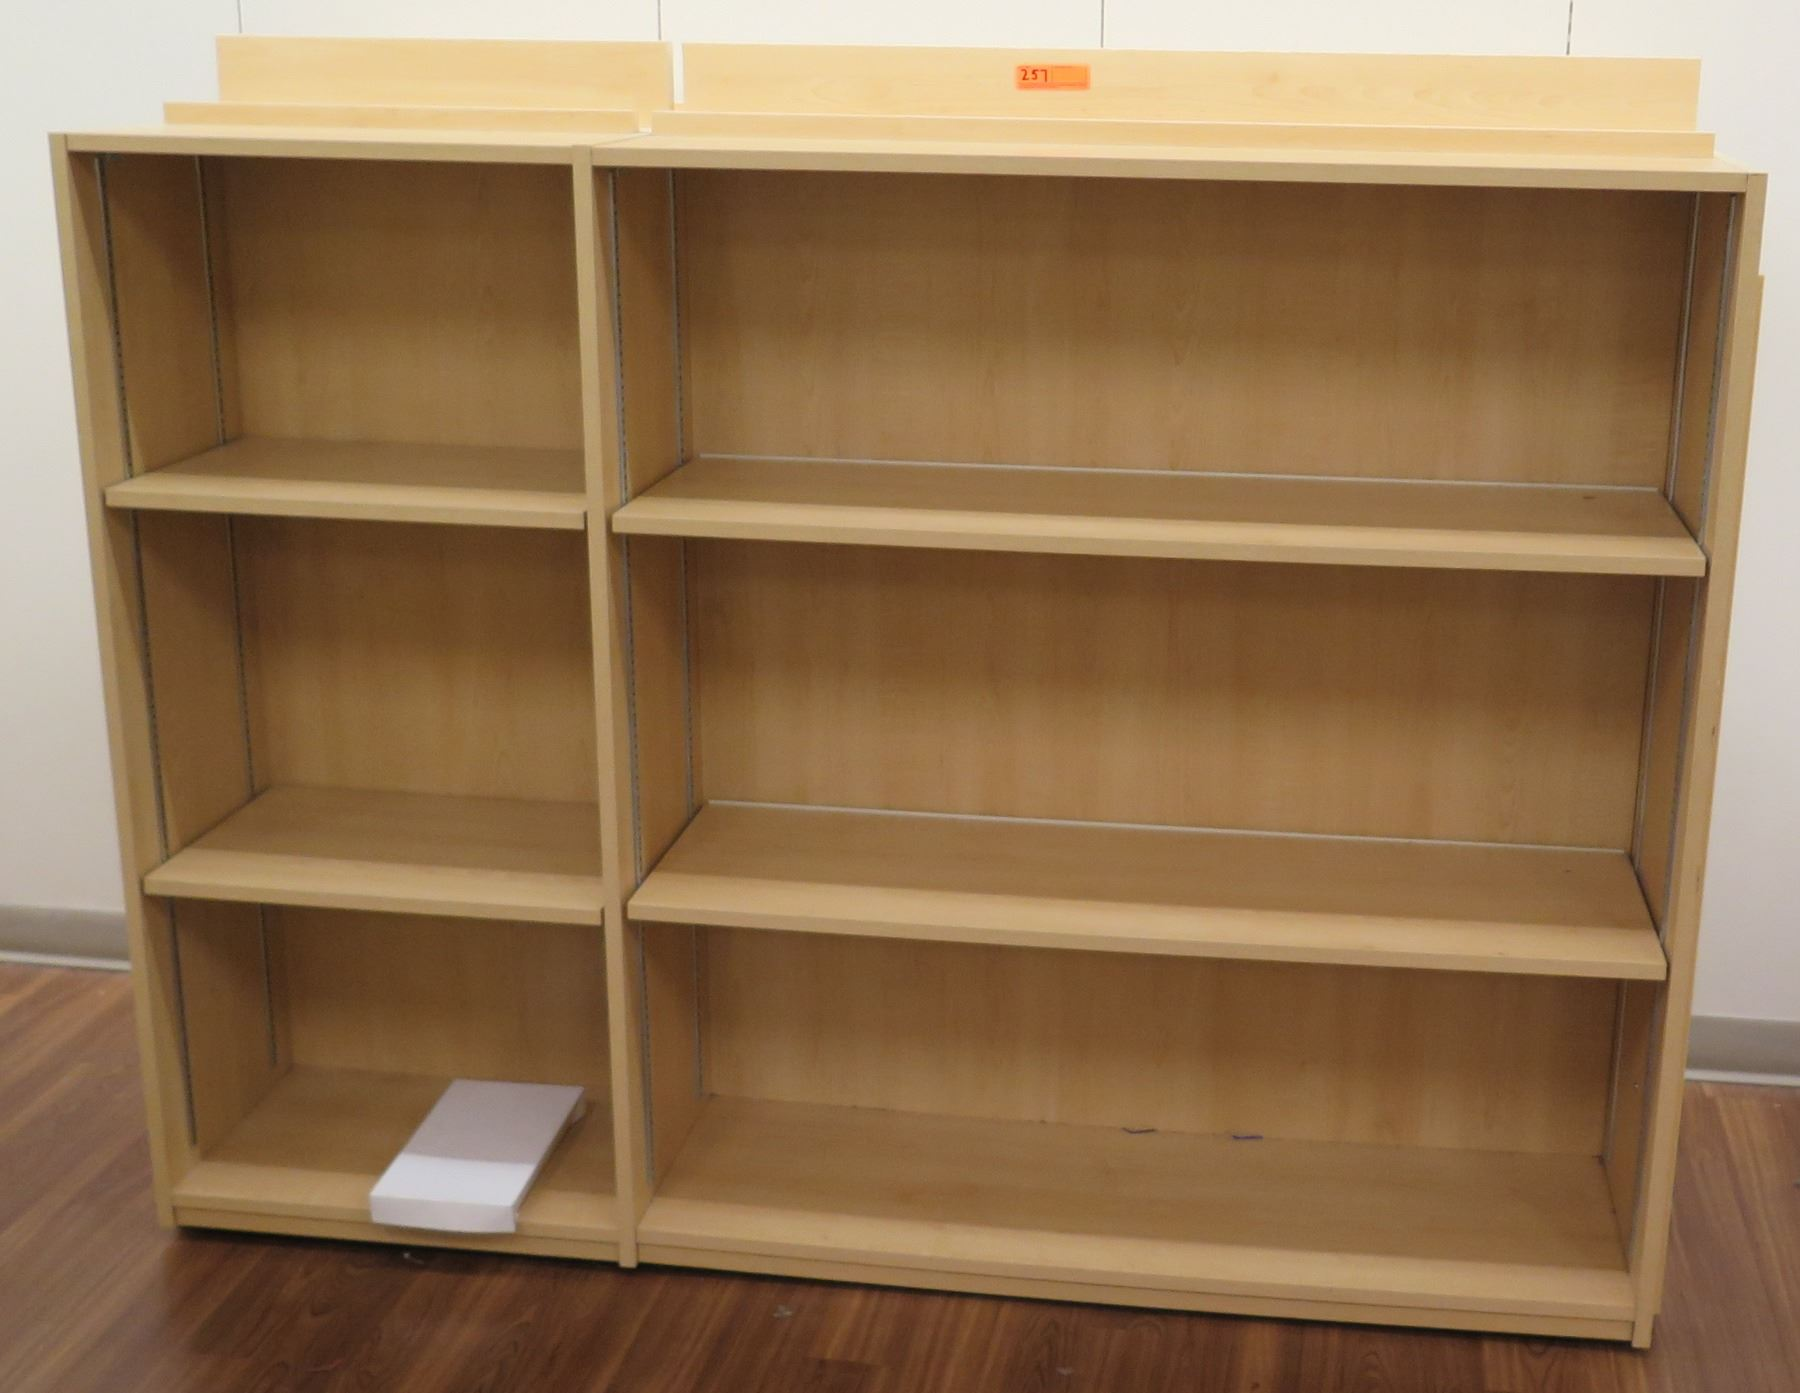 Wooden 6 Cubicle Display Shelf Unit 71 5 L X 29 D X 53 H